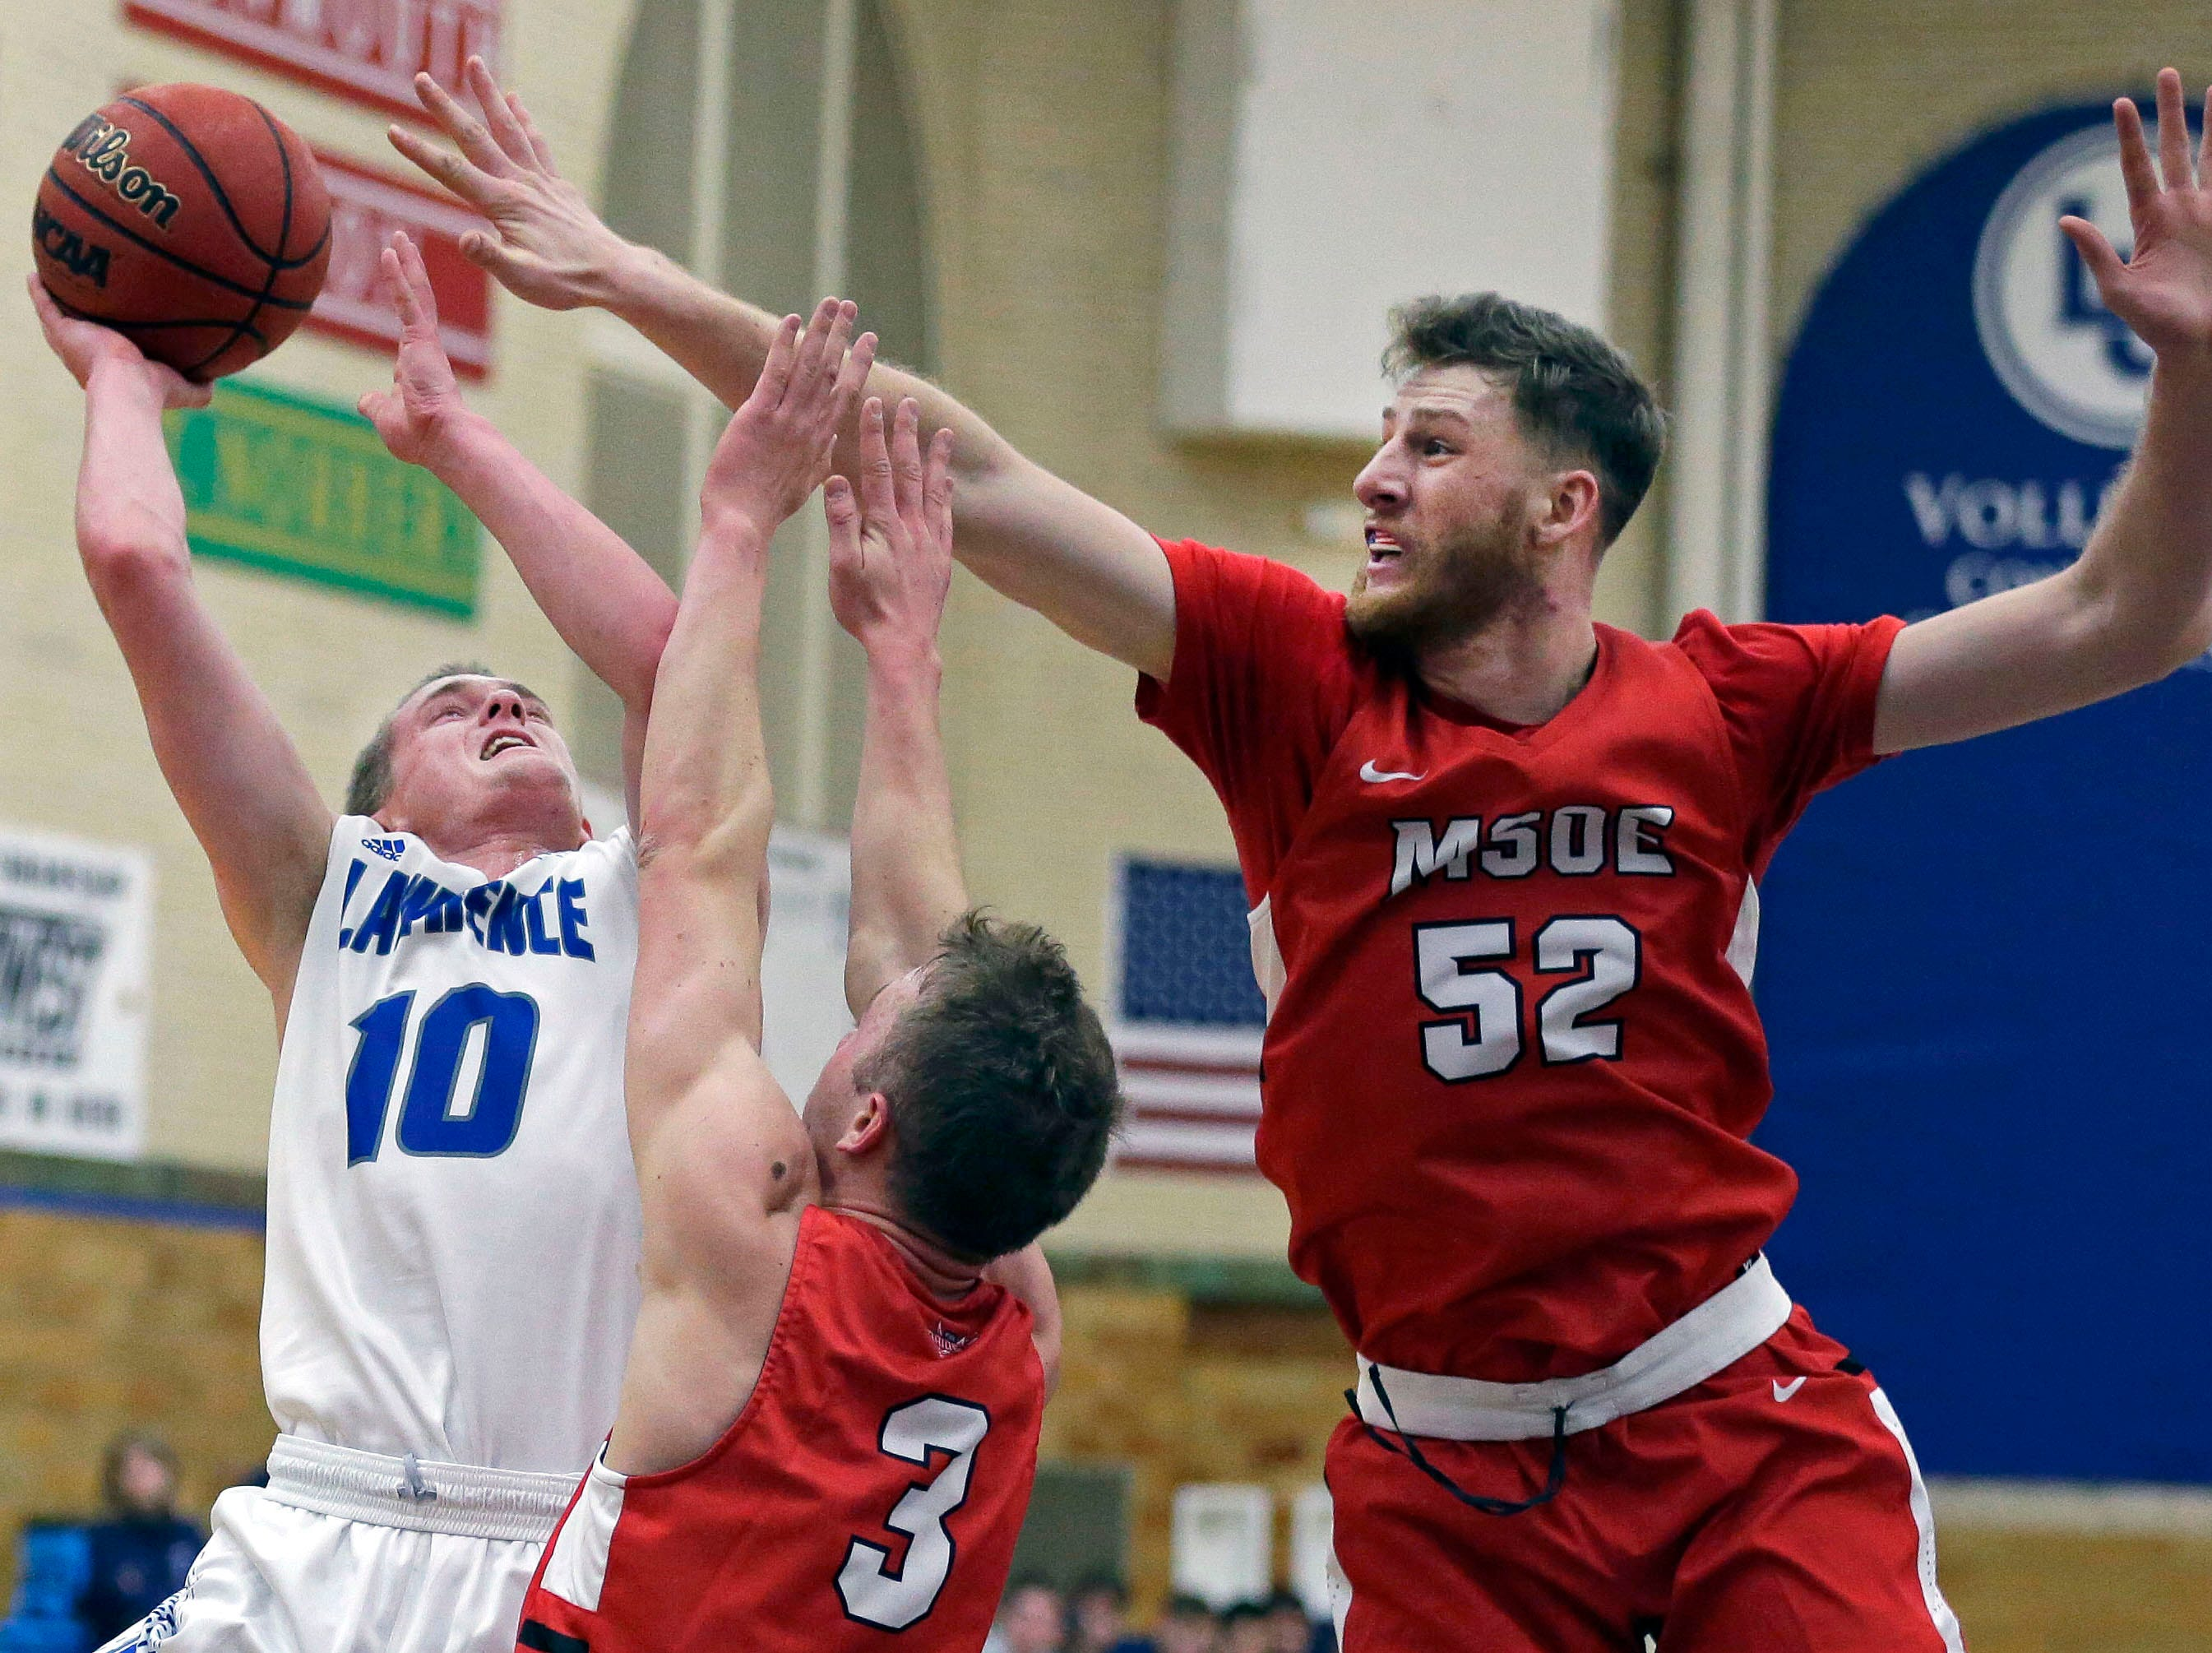 Brad Sendell of Lawrence University goes up for a shot while being defended by Jason Palesse and Dylan Hamlin (52) of  MSOE Saturday, November 17, 2018, at Alexander Gym in Appleton, Wis.